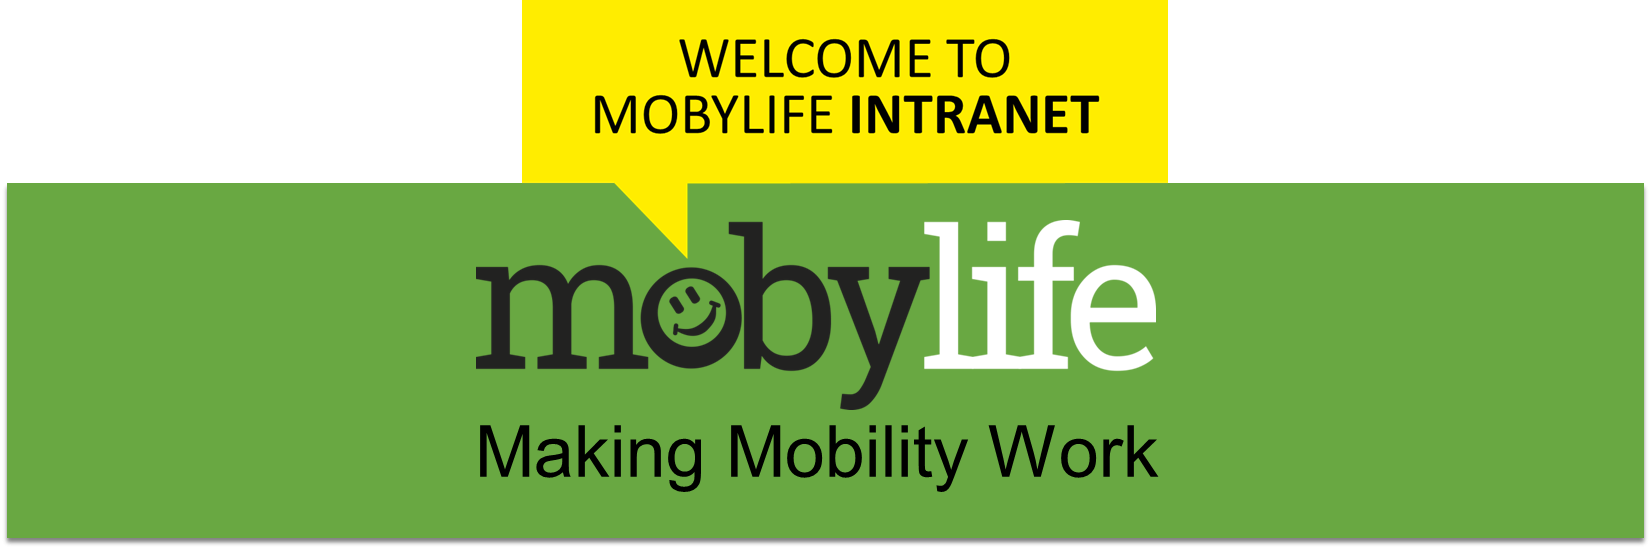 Mobylife intranet